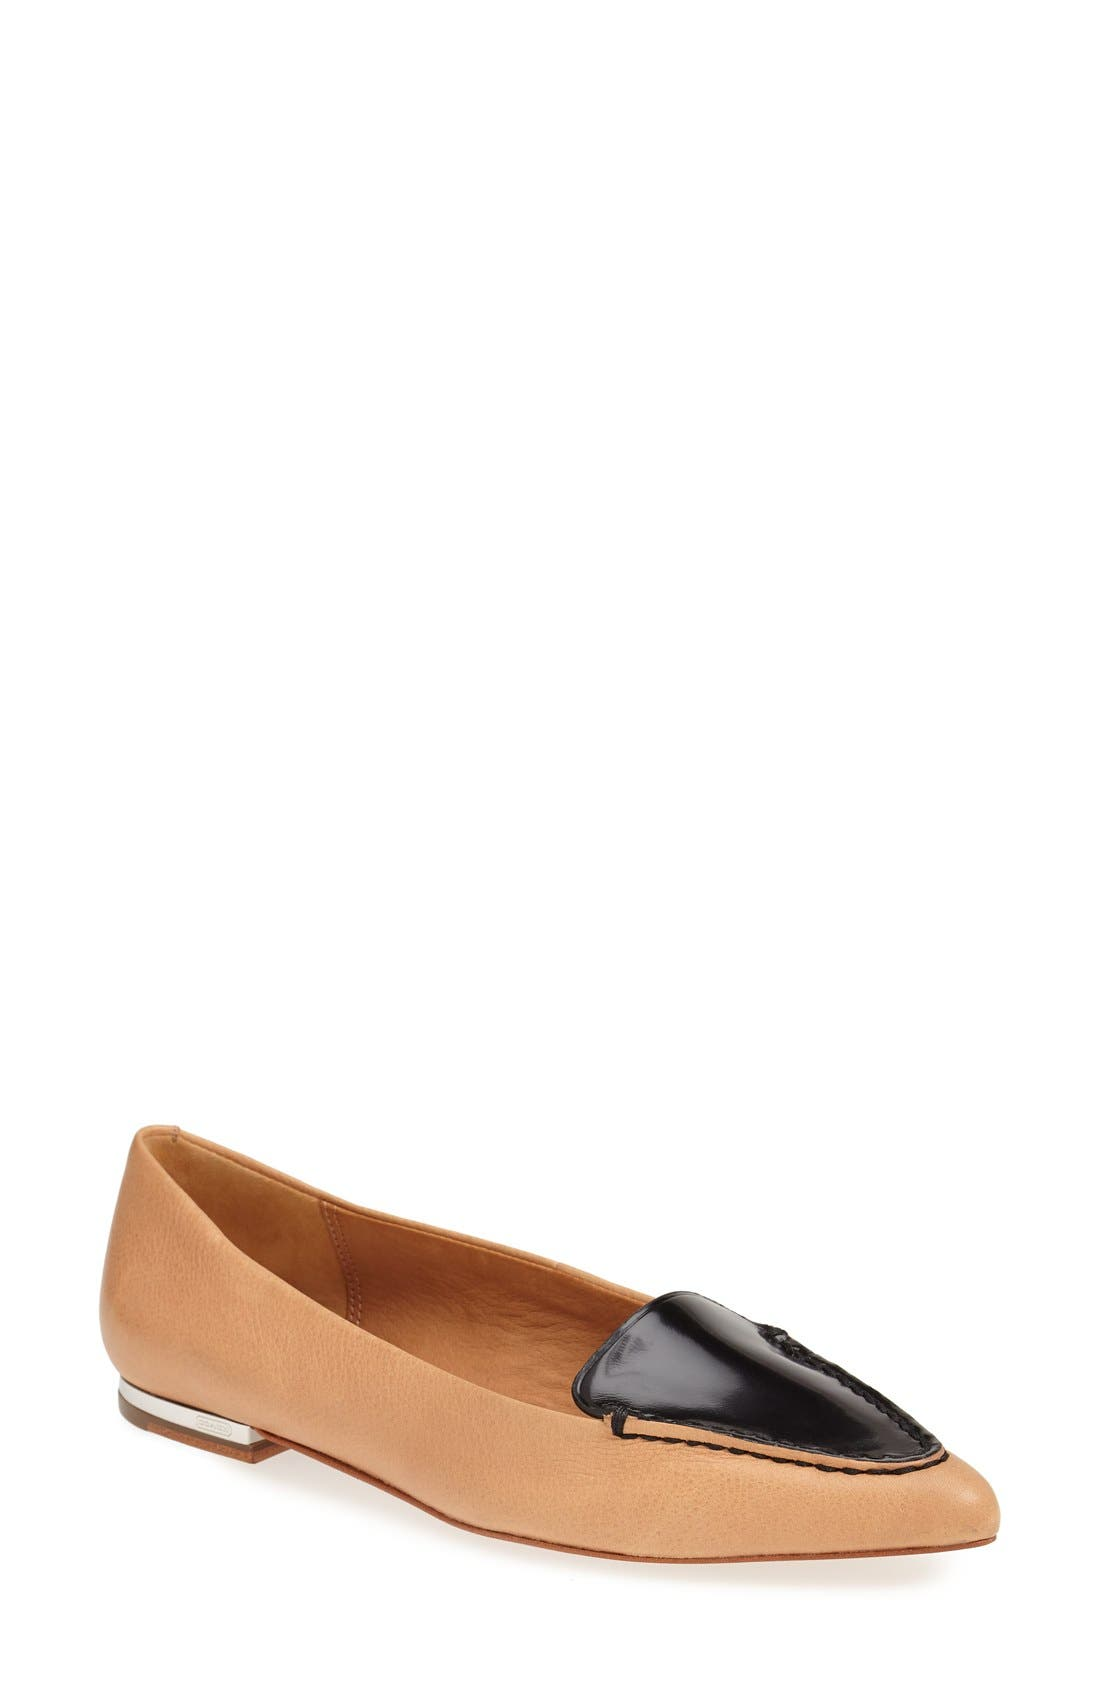 Main Image - COACH 'Walsh' Leather Loafer (Women)